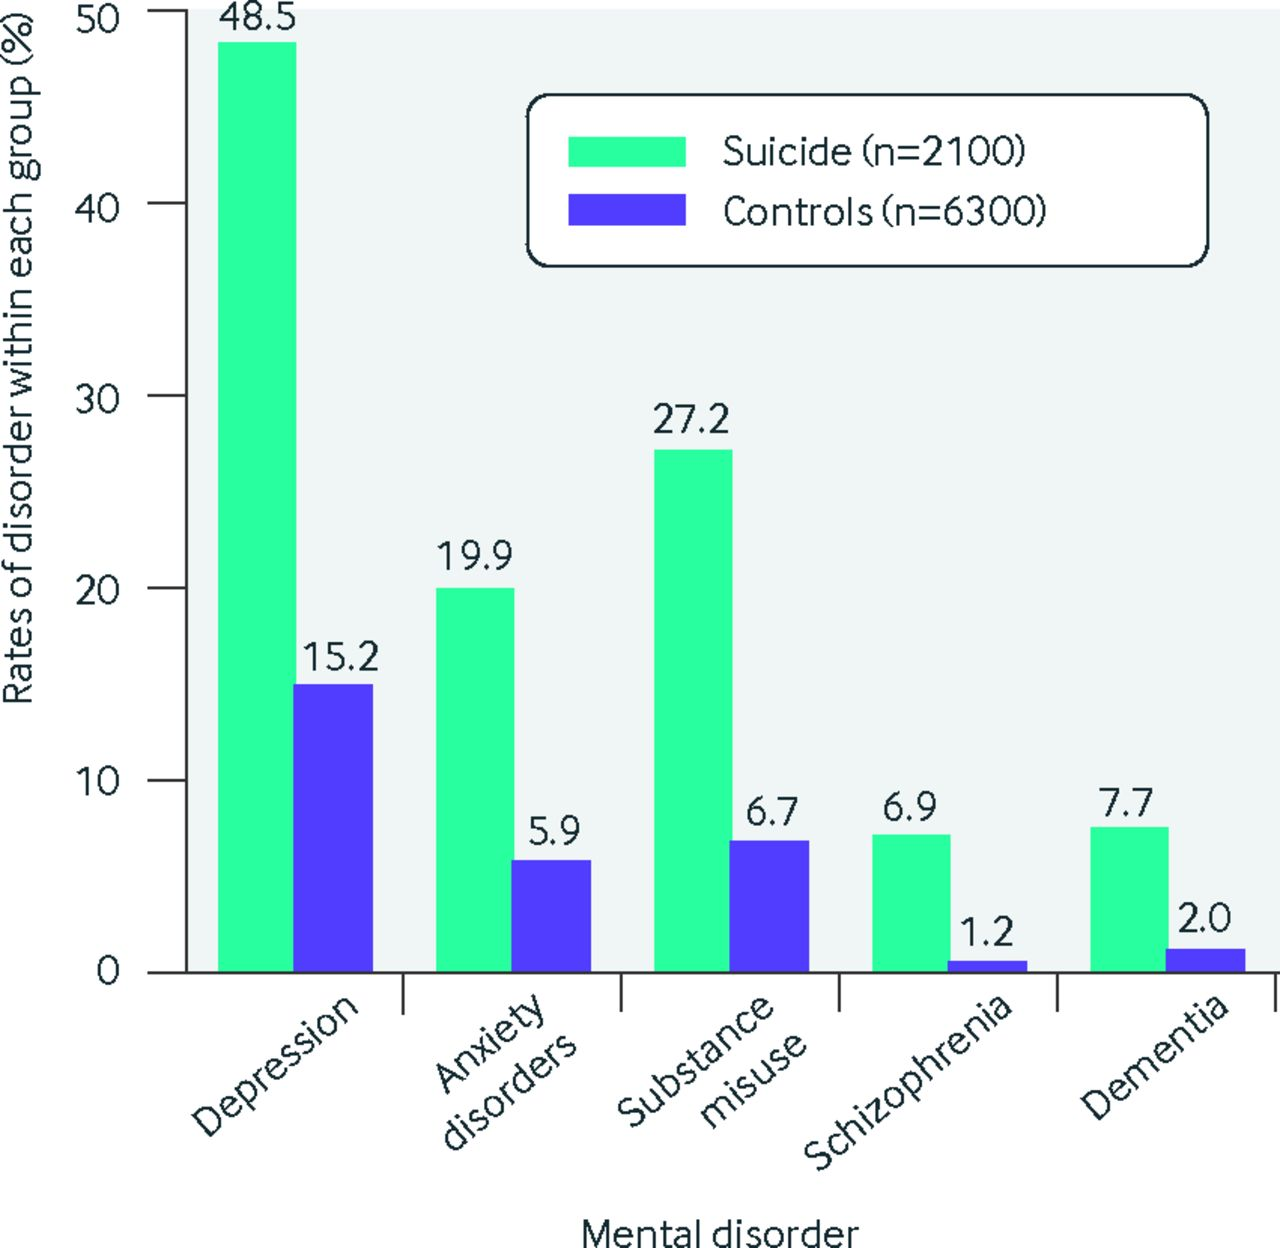 Suicide risk assessment and intervention in people with mental